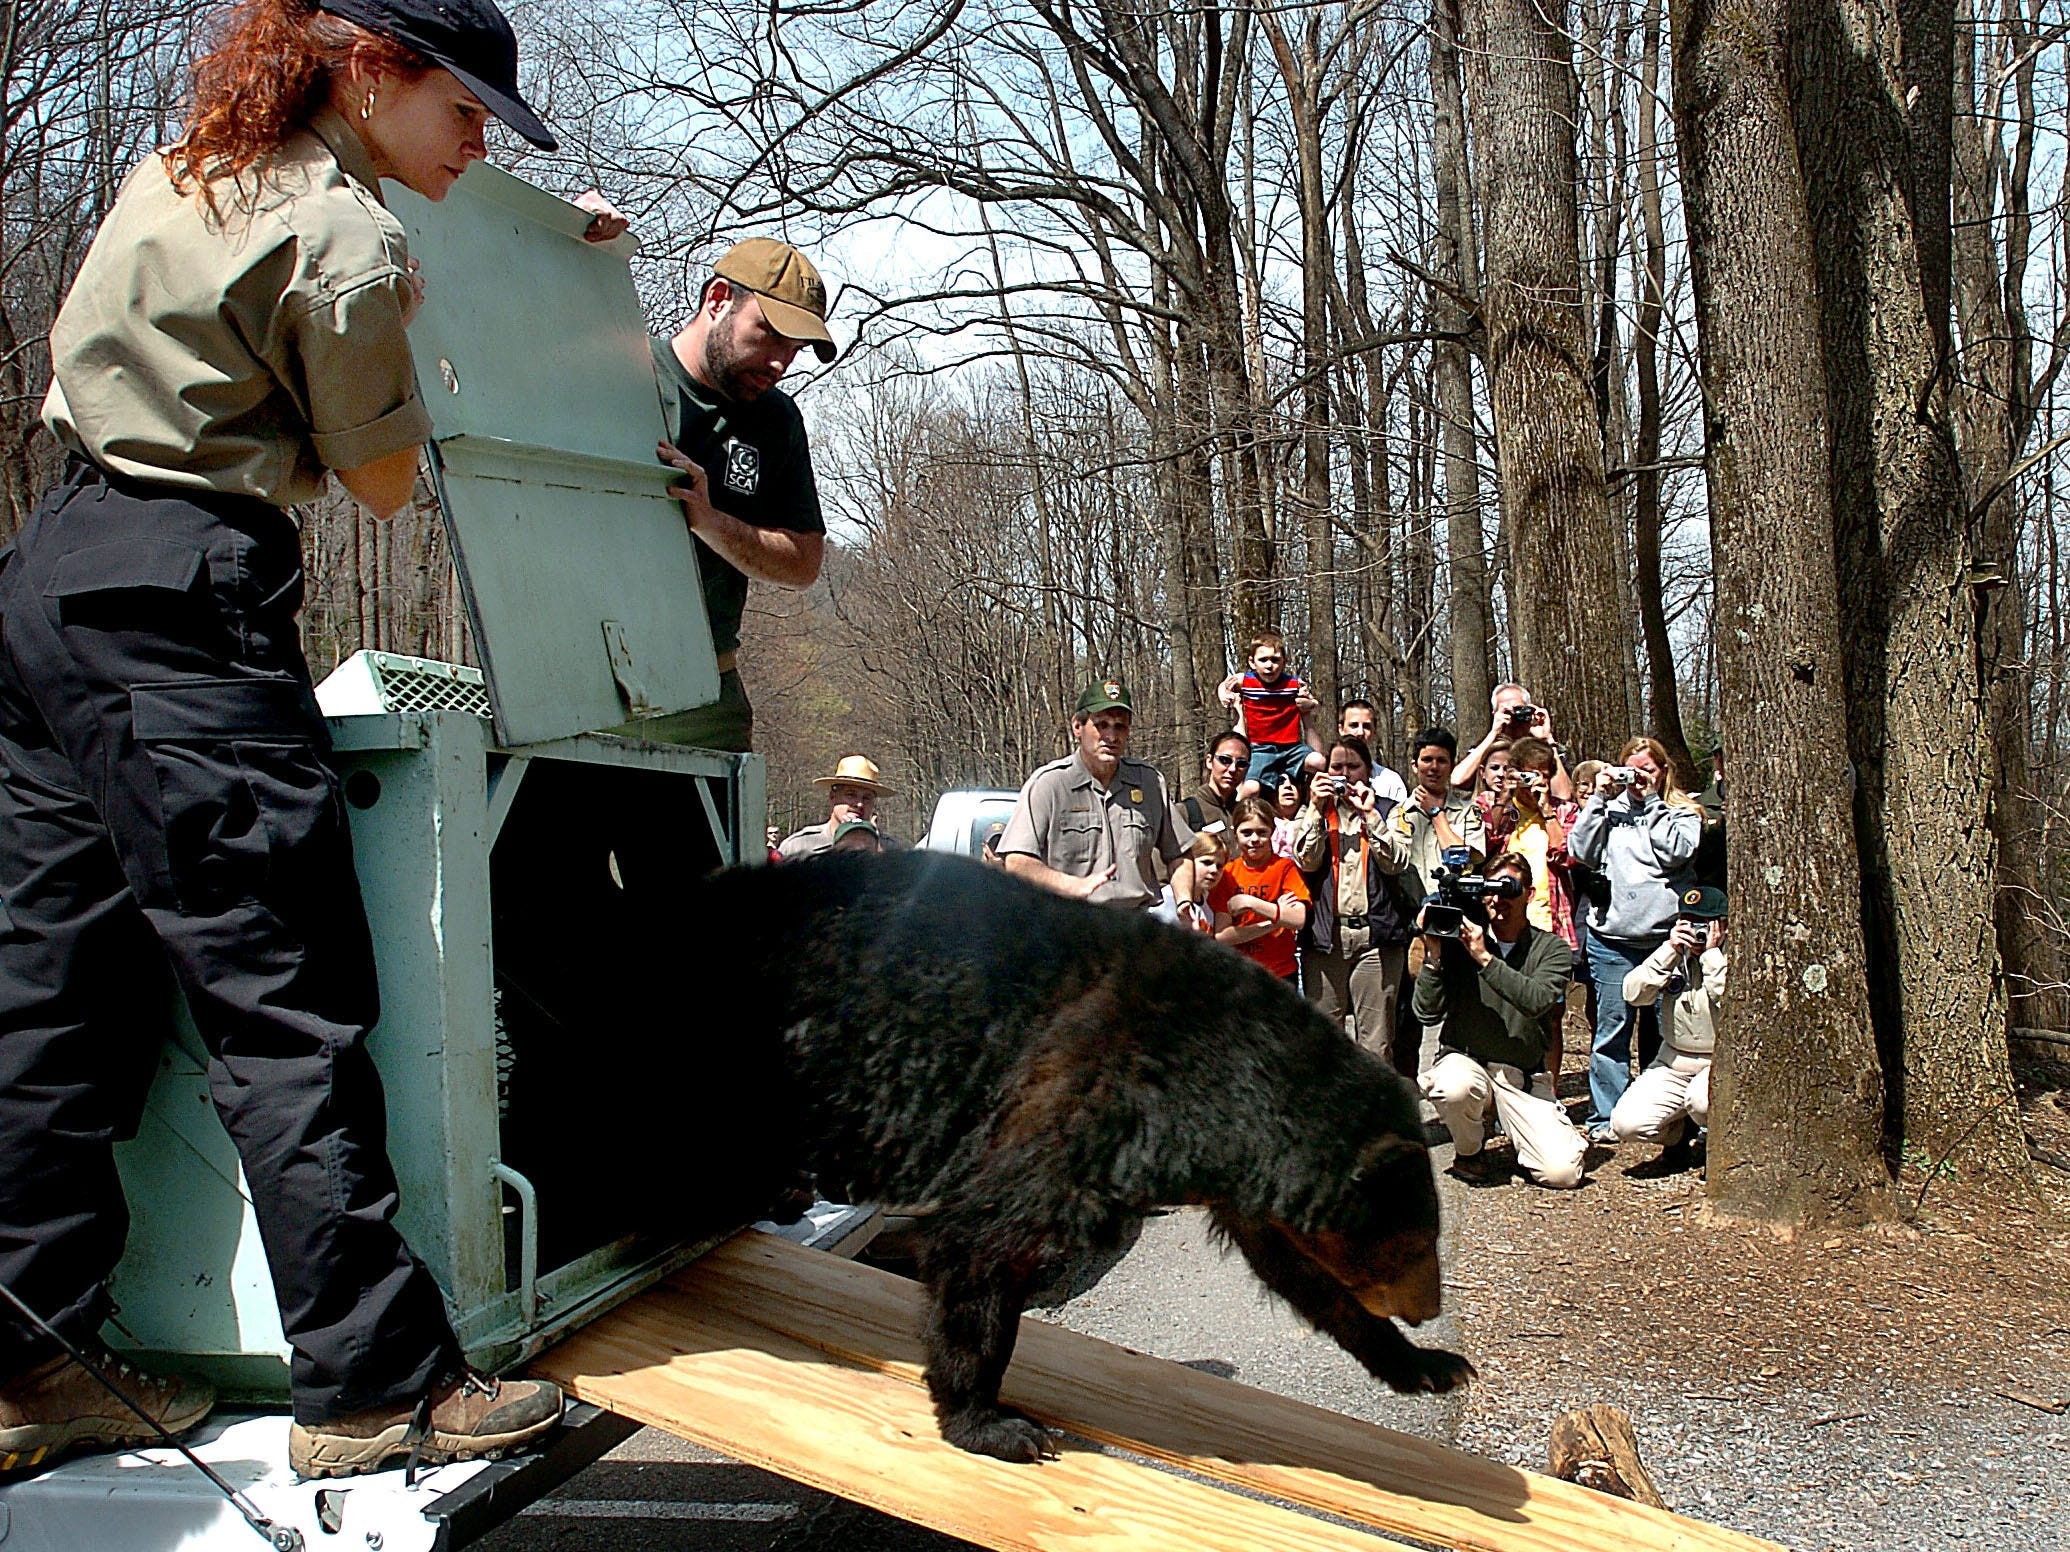 Lisa Stewart, left, and Scott Sharp hold open the door to the cage releasing Chester into the Great Smoky Mountains National Park. The 2-year-old male black bear was only 28-pounds and injured when found and Monday during the final pre-release examination the he weighed 189-pounds. 2005